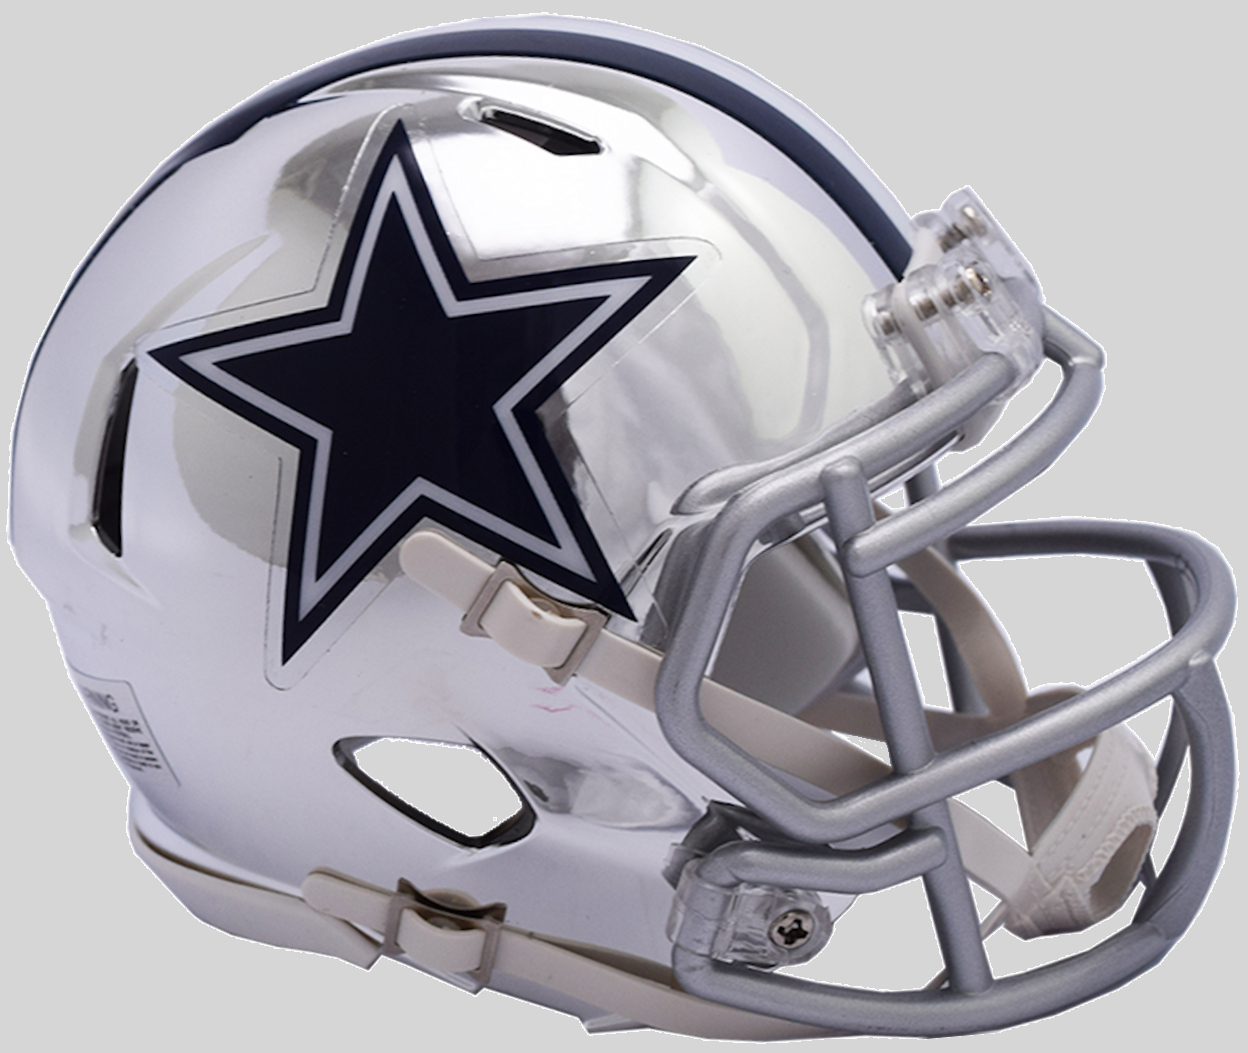 Dallas Cowboys NFL Mini Chrome Speed Football Helmet <B>NEW 2018</B>